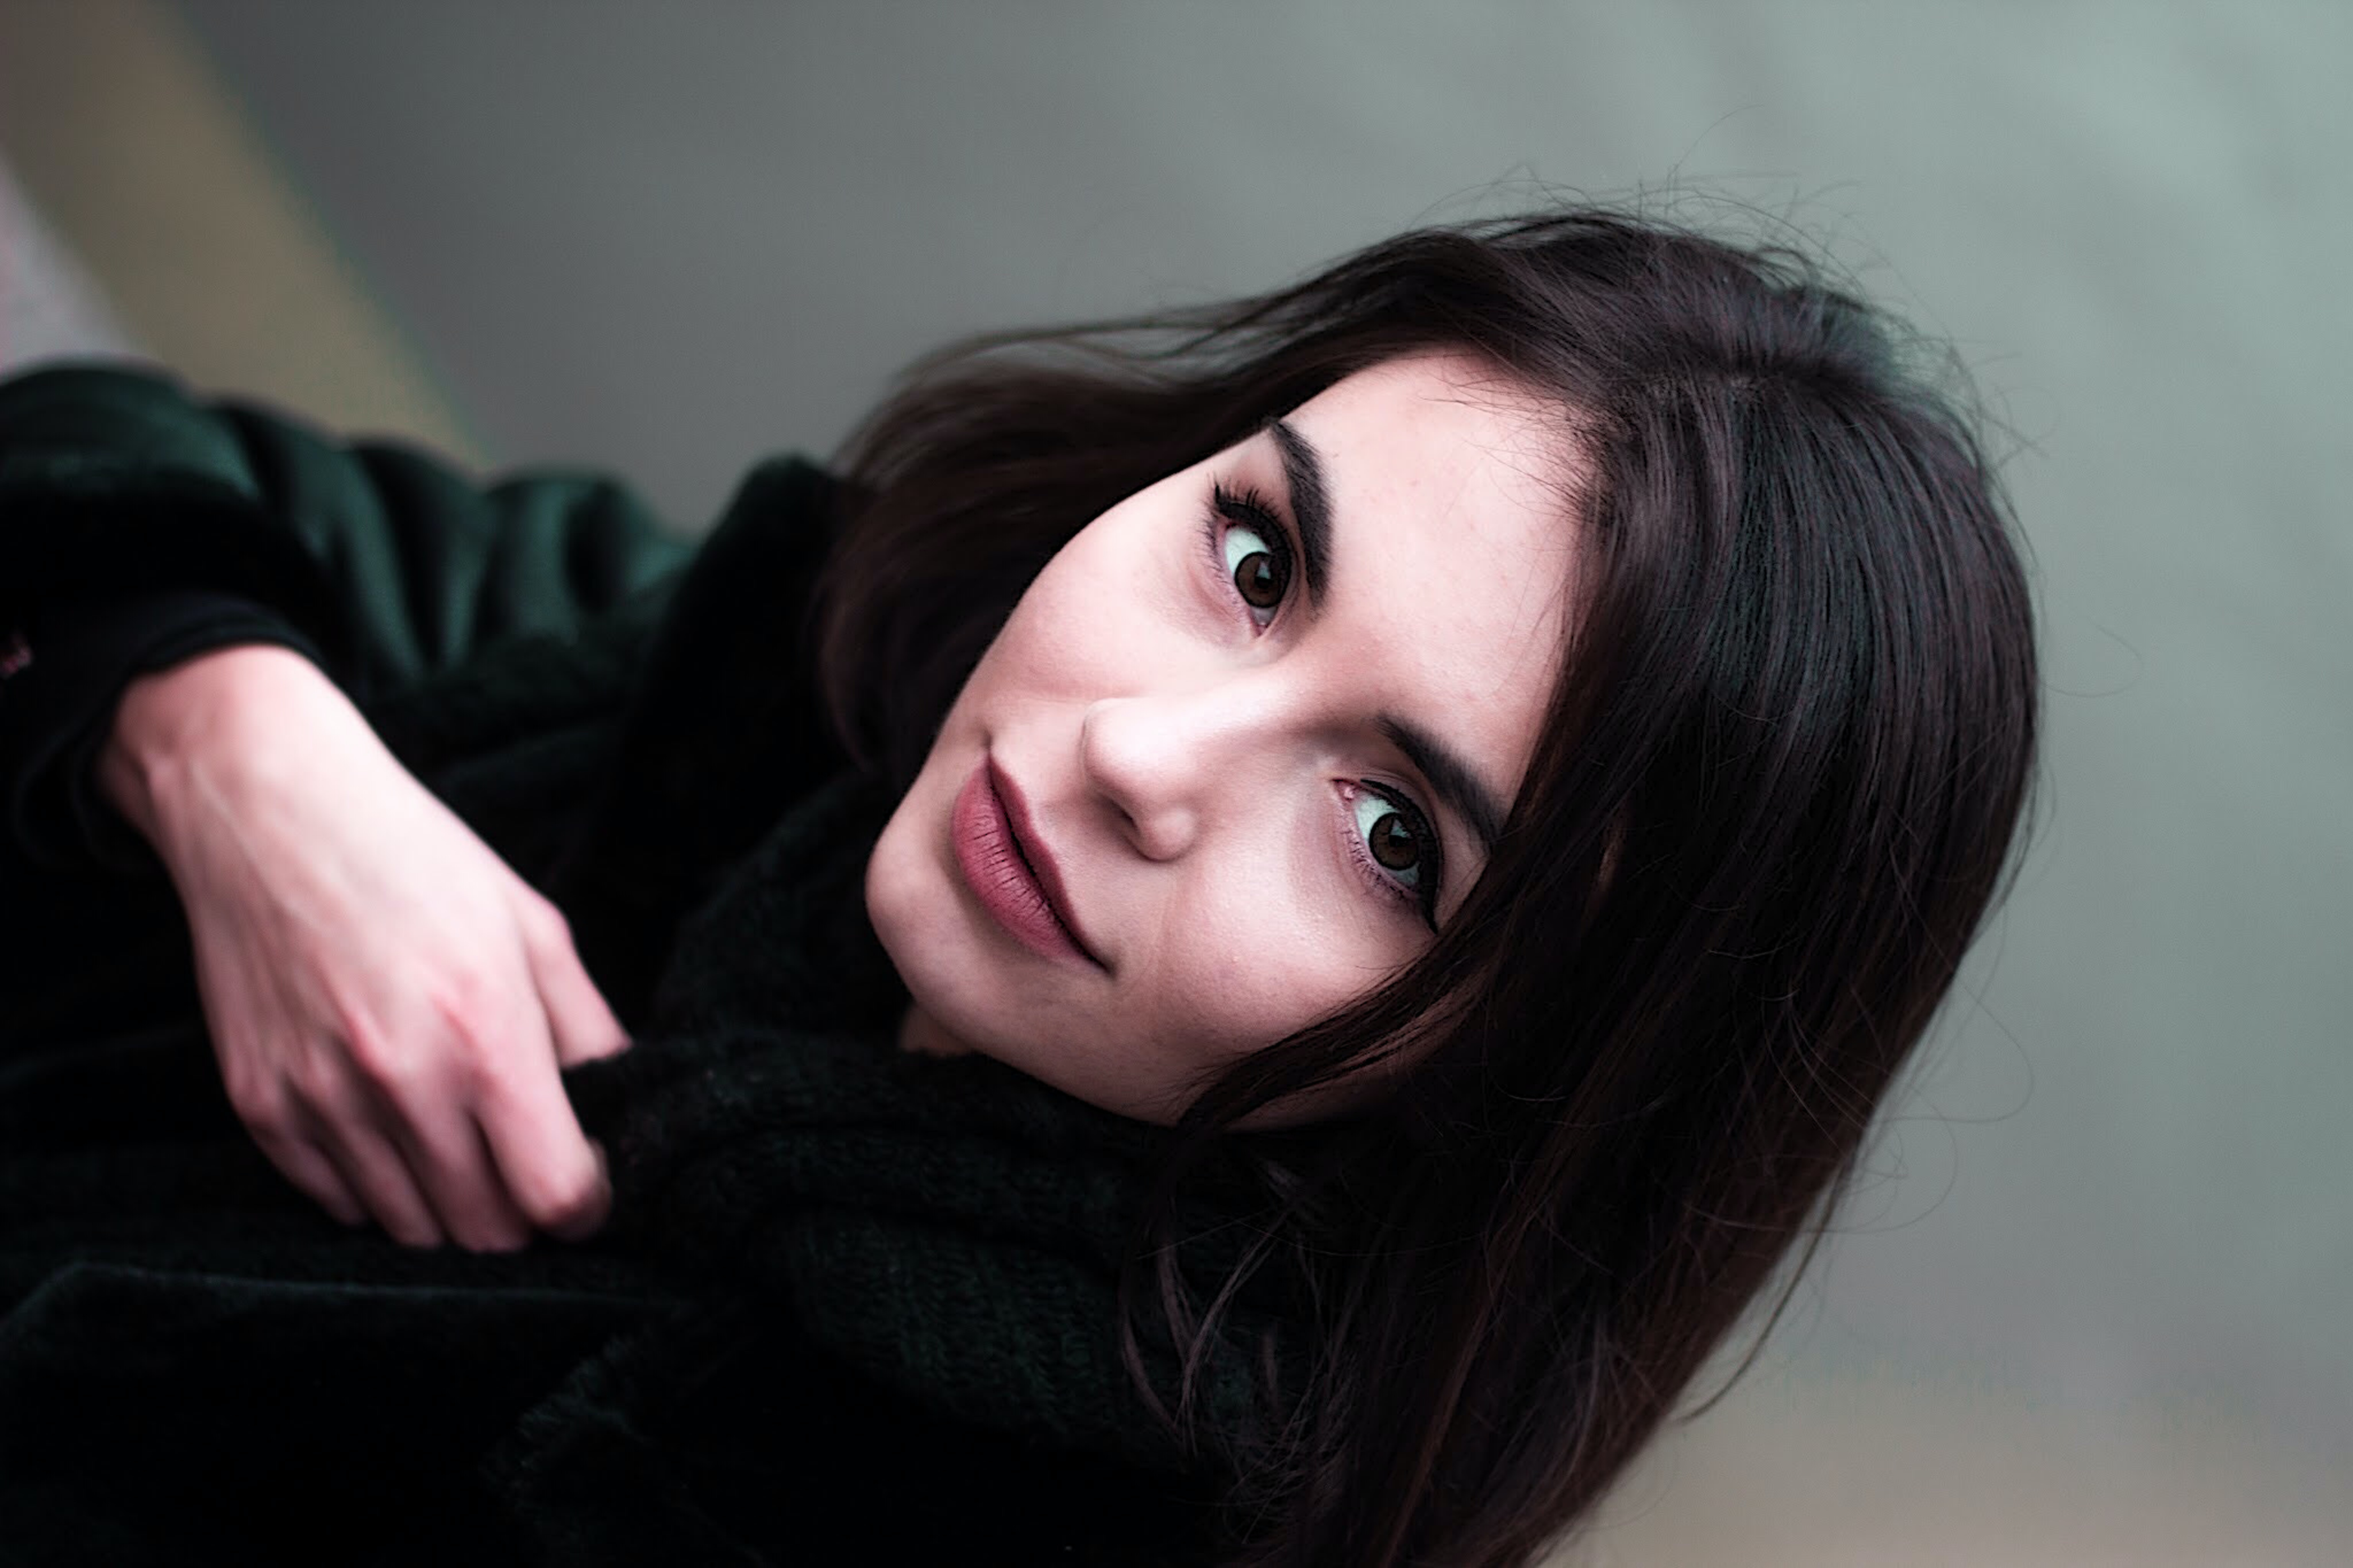 shallow focus photography of woman showing smile while holding coat